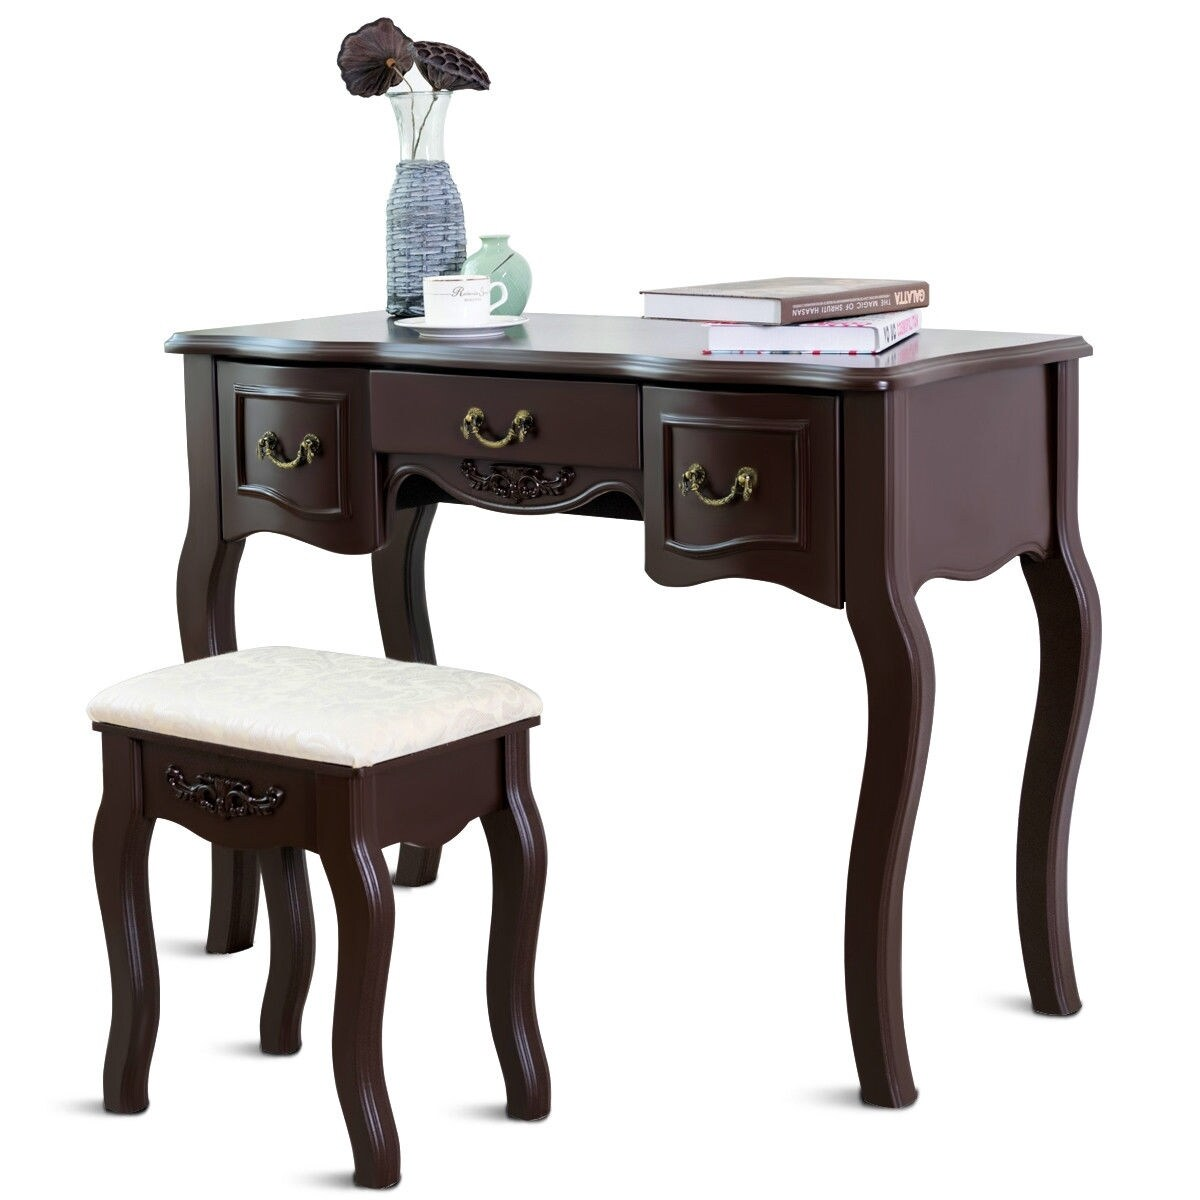 Tri Folding Vintage Vanity Makeup Dressing Table Set 5 Drawers Christmas Black Brown Overstock 28422415